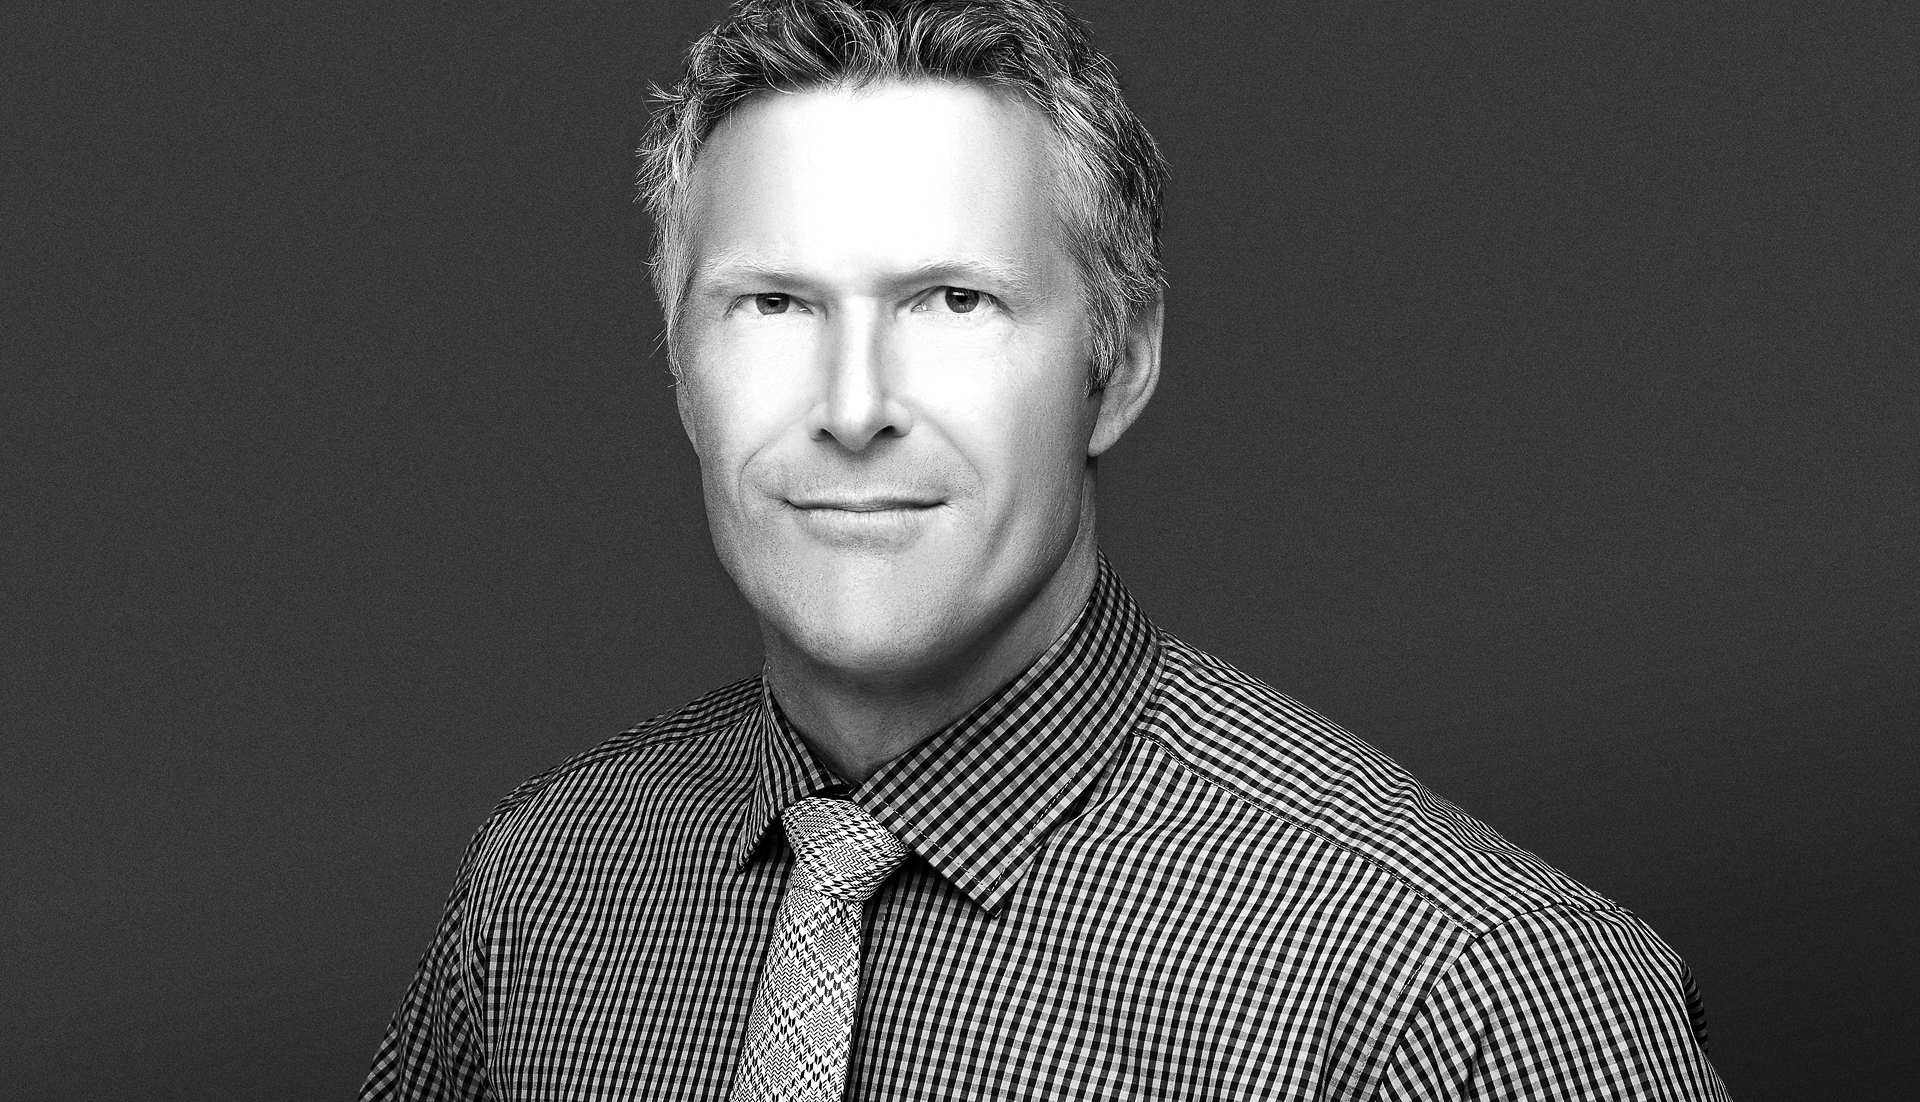 Metro headshots experts in black and white business portraits